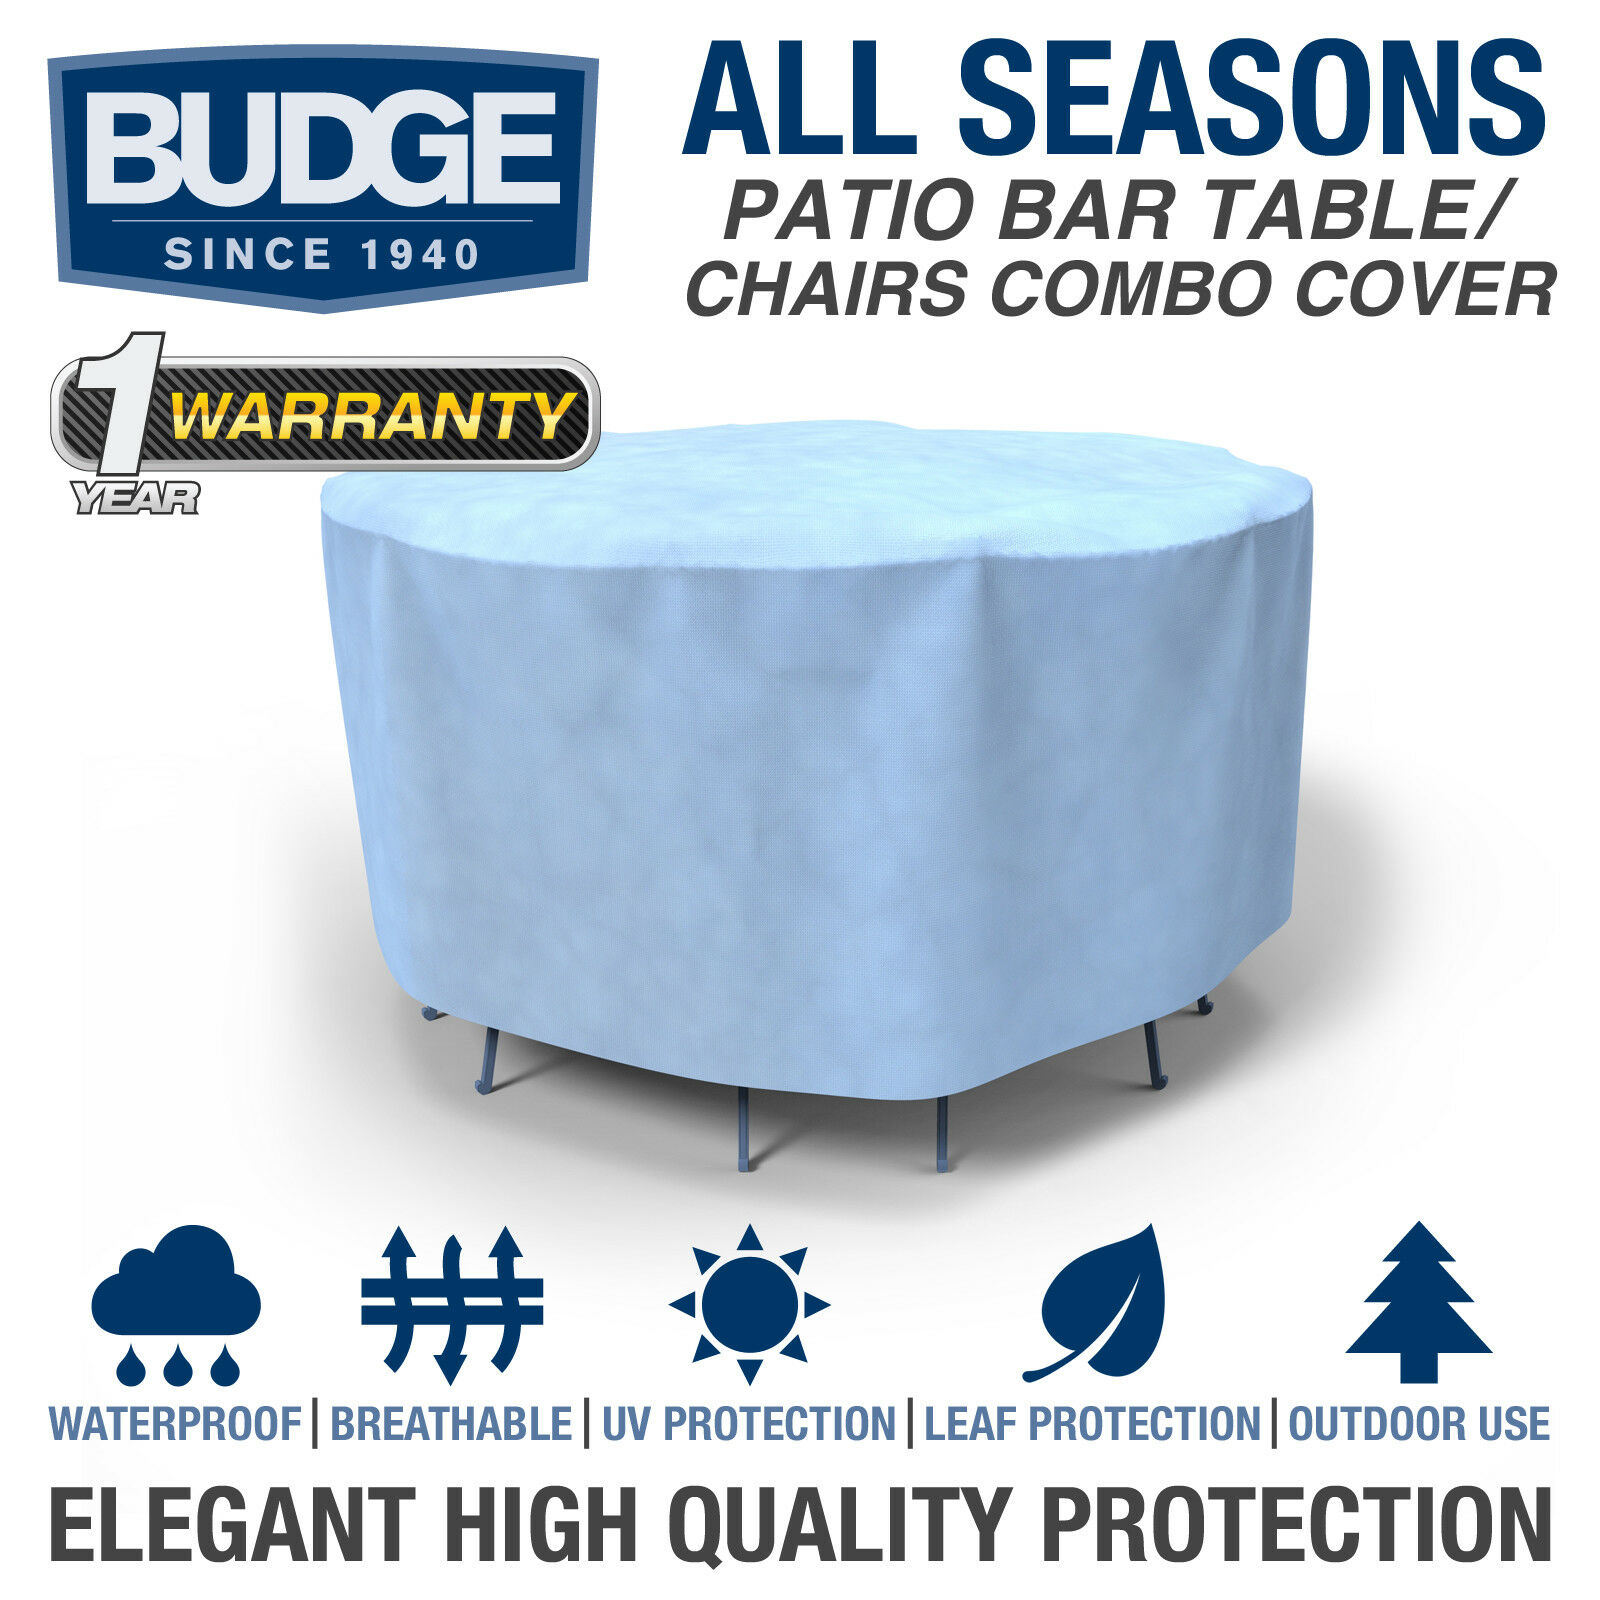 all seasons patio bar table and chairs